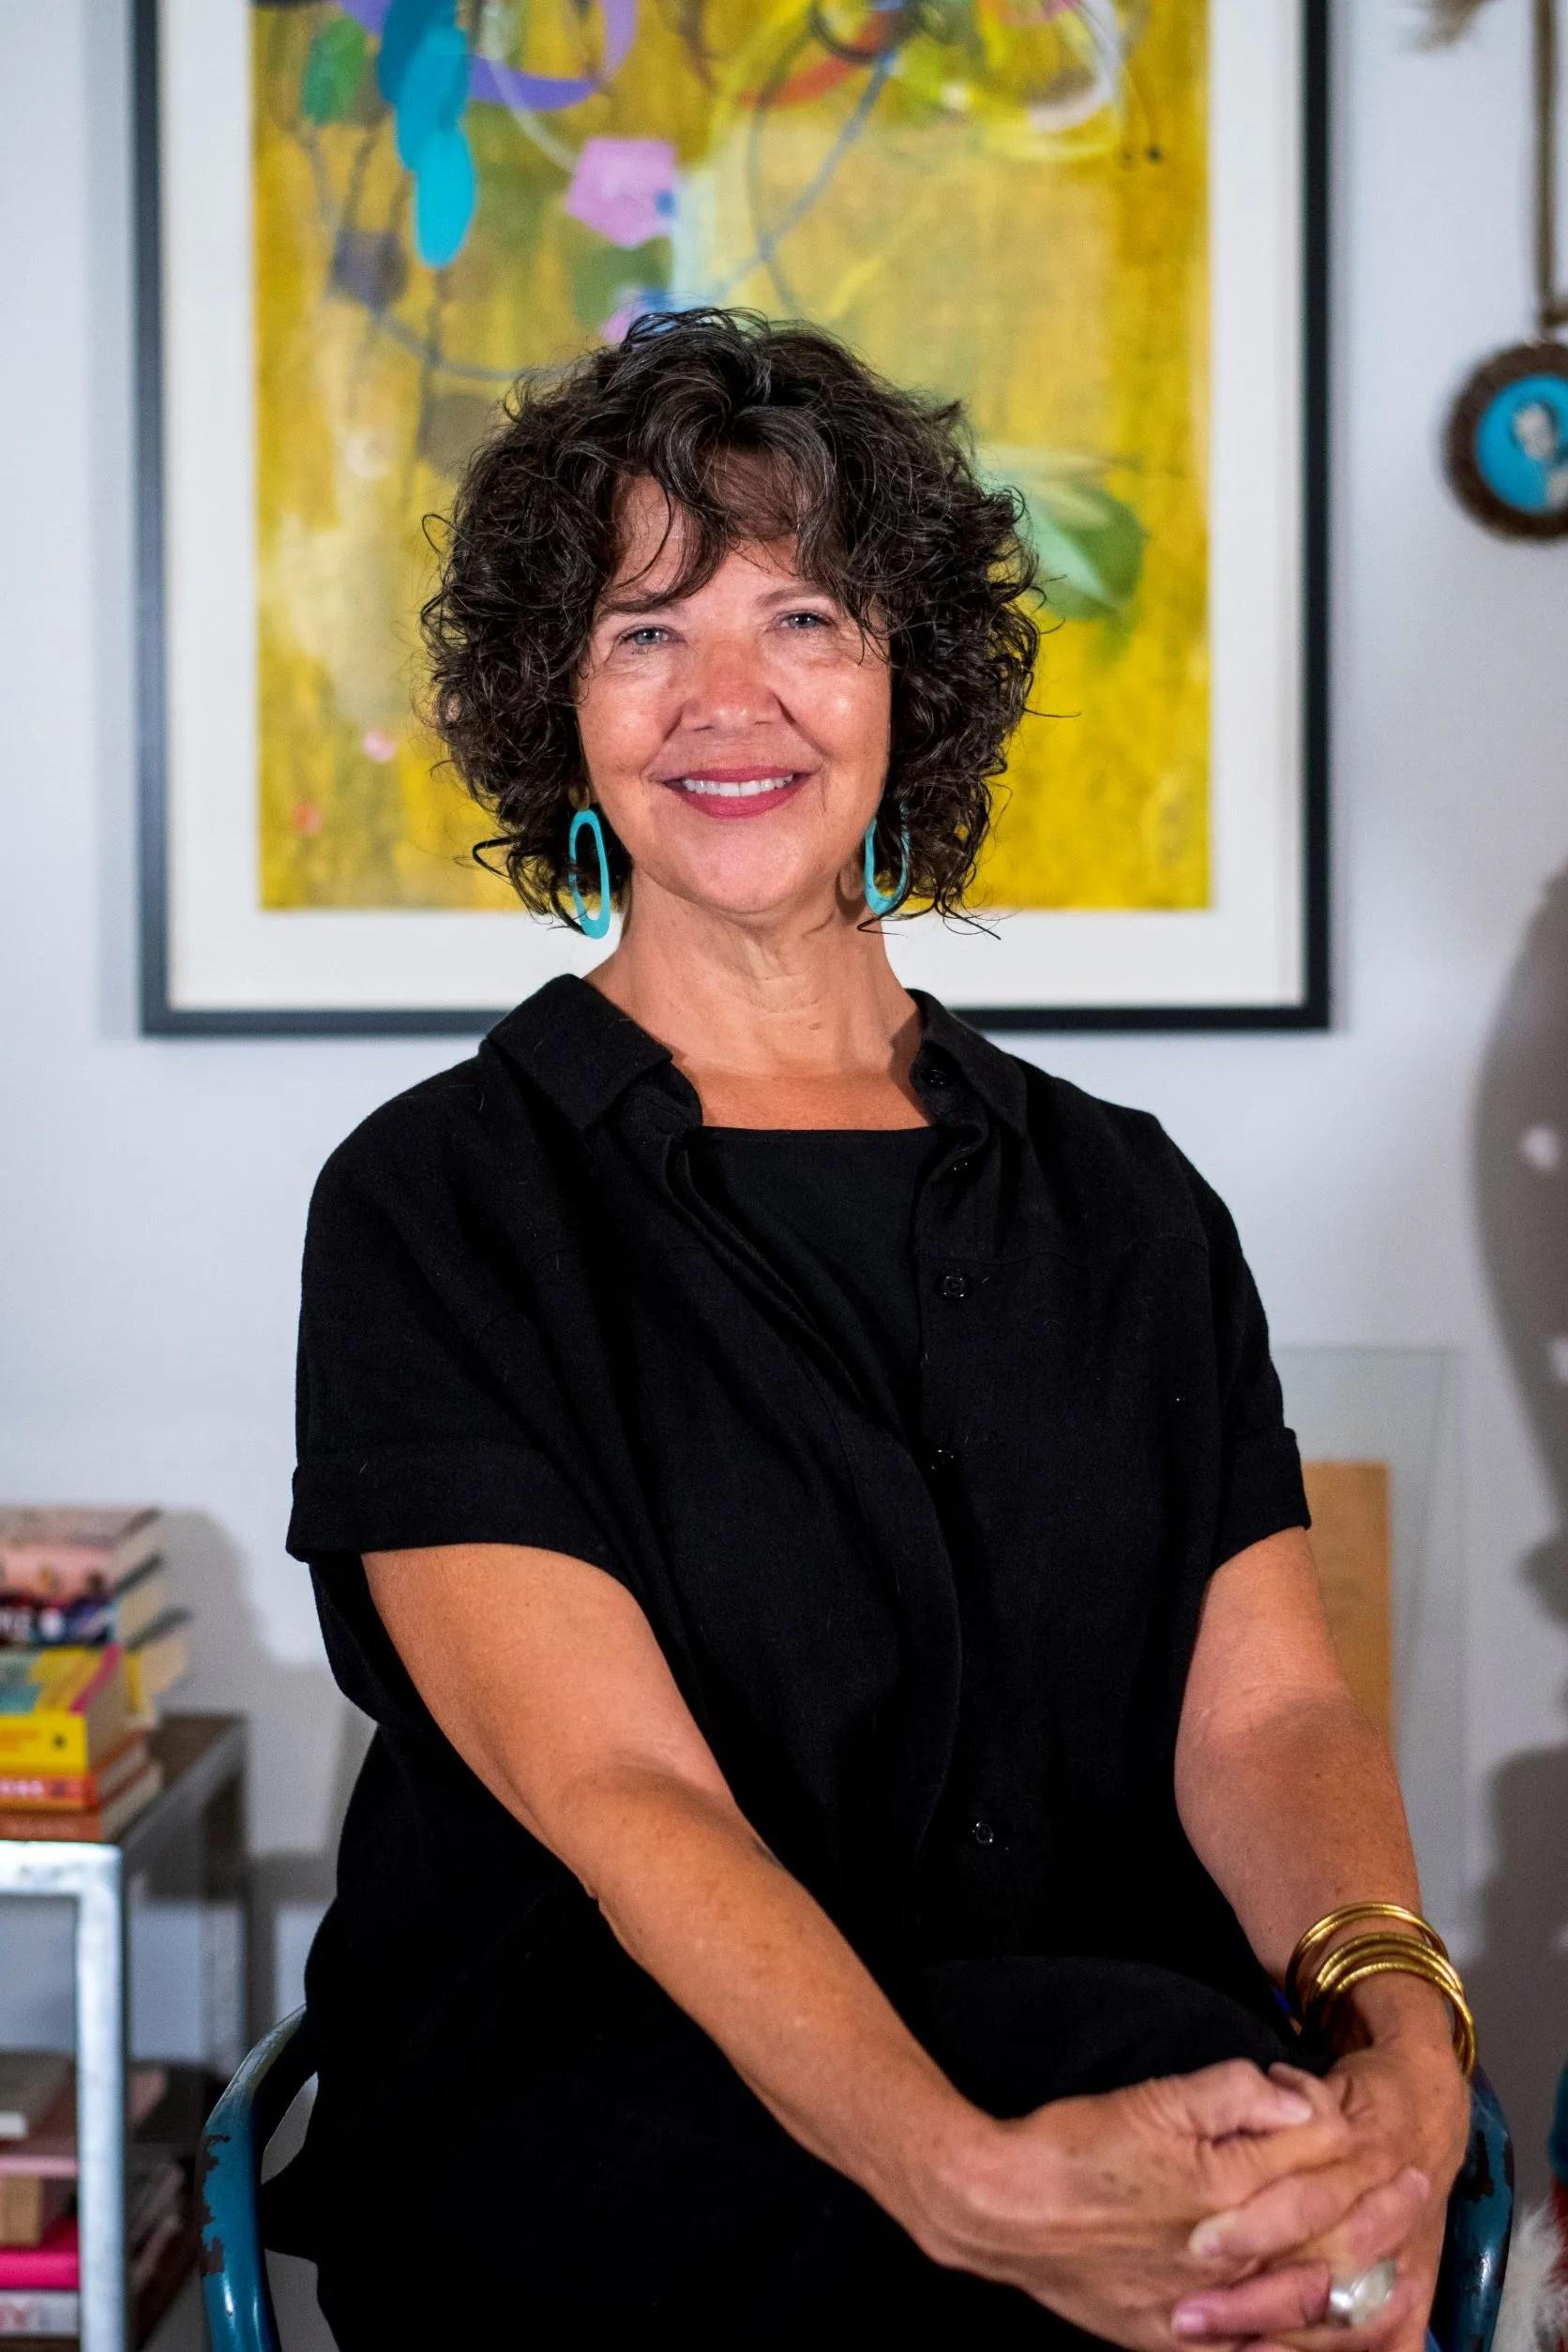 Stacy Sims is named a 2021 Enquirer Woman of the Year. She works to educate people about mindfulness and mental health through organizations including Mindful Music Moments and workshops.